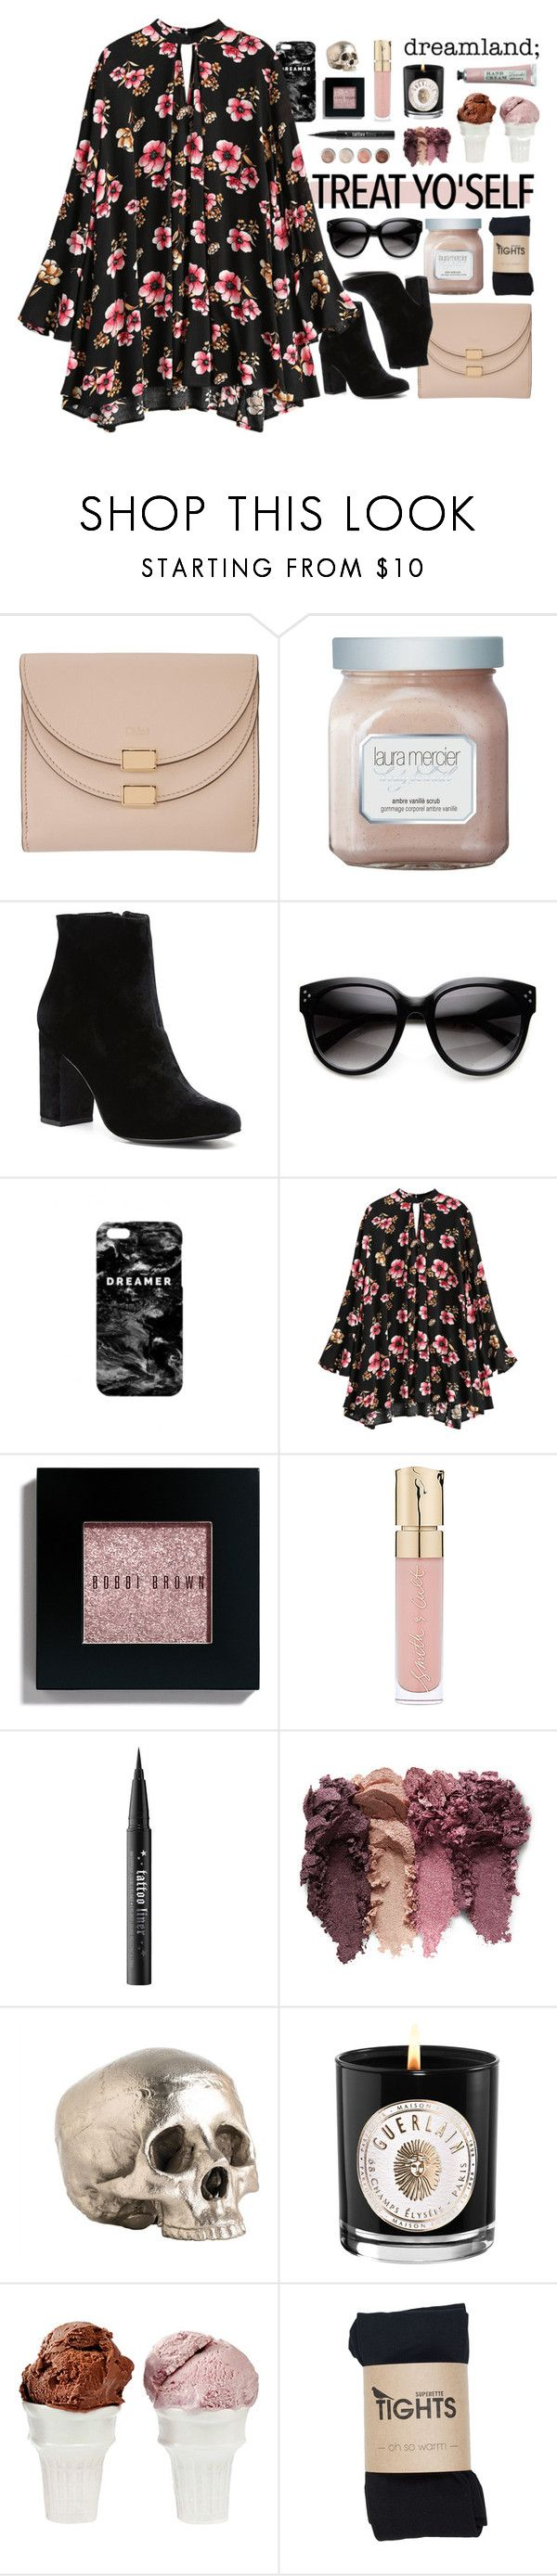 """""""treat yo'self"""" by forebodinq ❤ liked on Polyvore featuring Chloé, Laura Mercier, Witchery, Mr. Gugu & Miss Go, Bobbi Brown Cosmetics, Smith & Cult, Kat Von D, Arteriors, Guerlain and Terre Mère"""